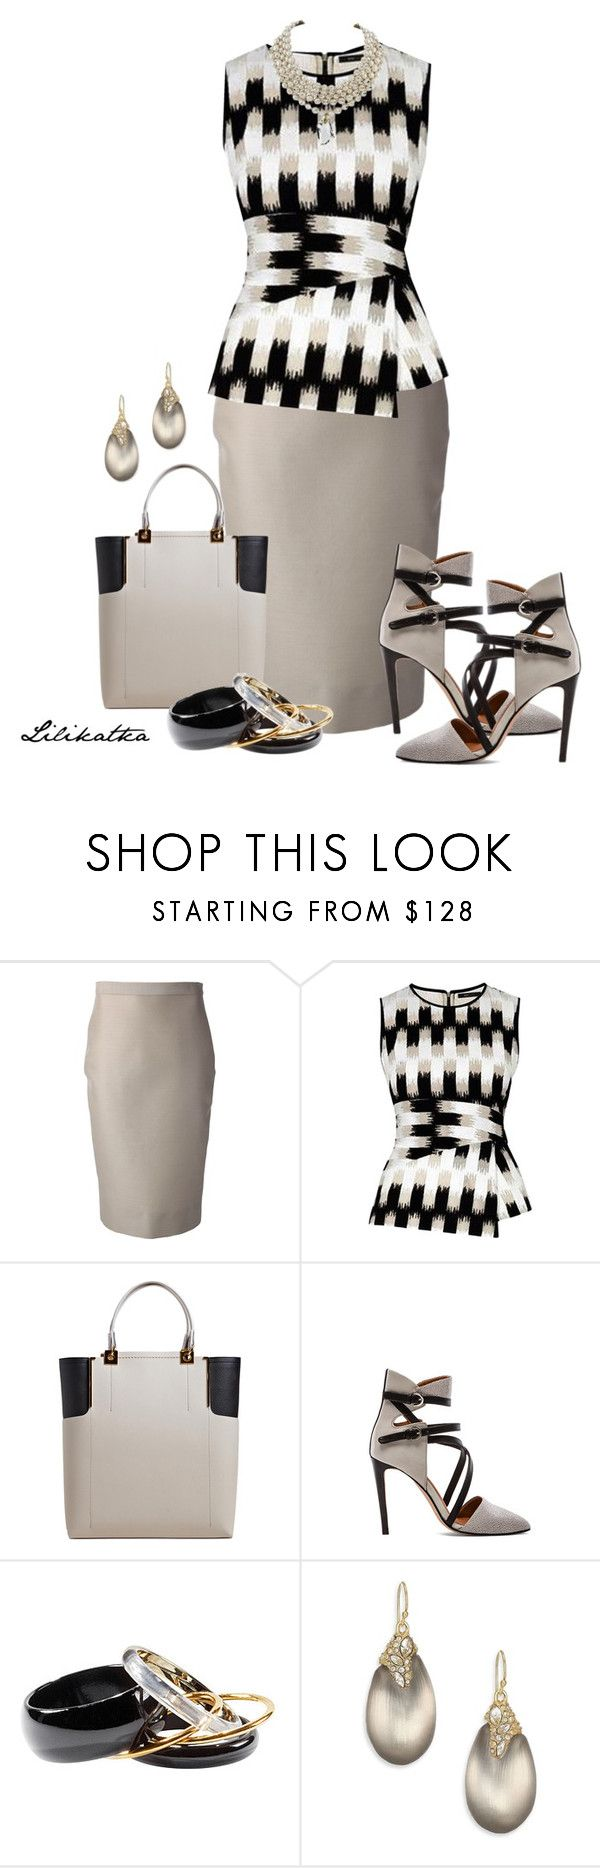 """""""Pivonka#1111"""" by lilikatka ❤ liked on Polyvore featuring Dsquared2, BCBGMAXAZRIA, Lanvin, Rebecca Minkoff, H&M, Alexis Bittar and Miriam Haskell"""